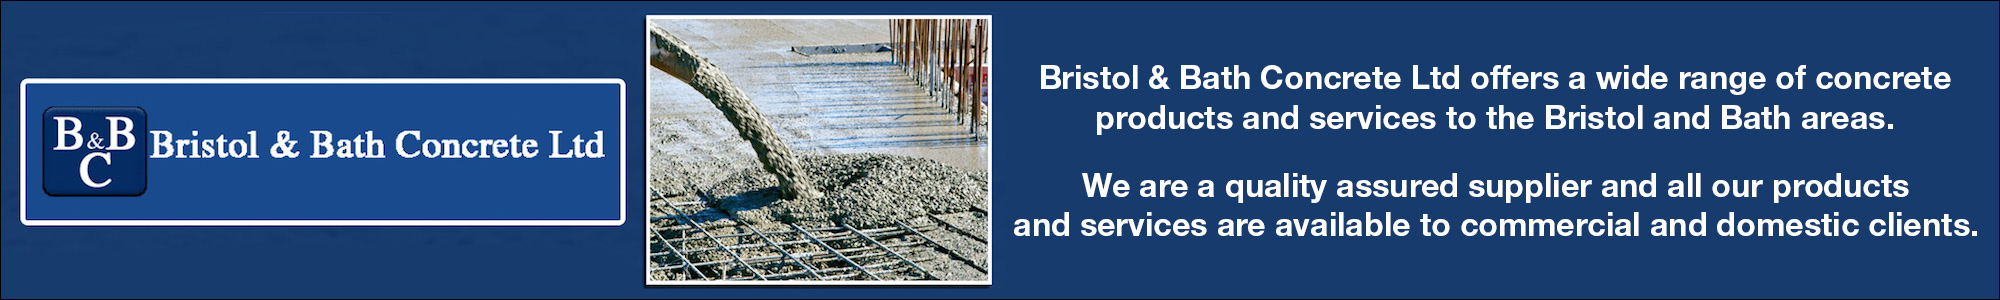 BRISTOL & BATH CONCRETE LTD